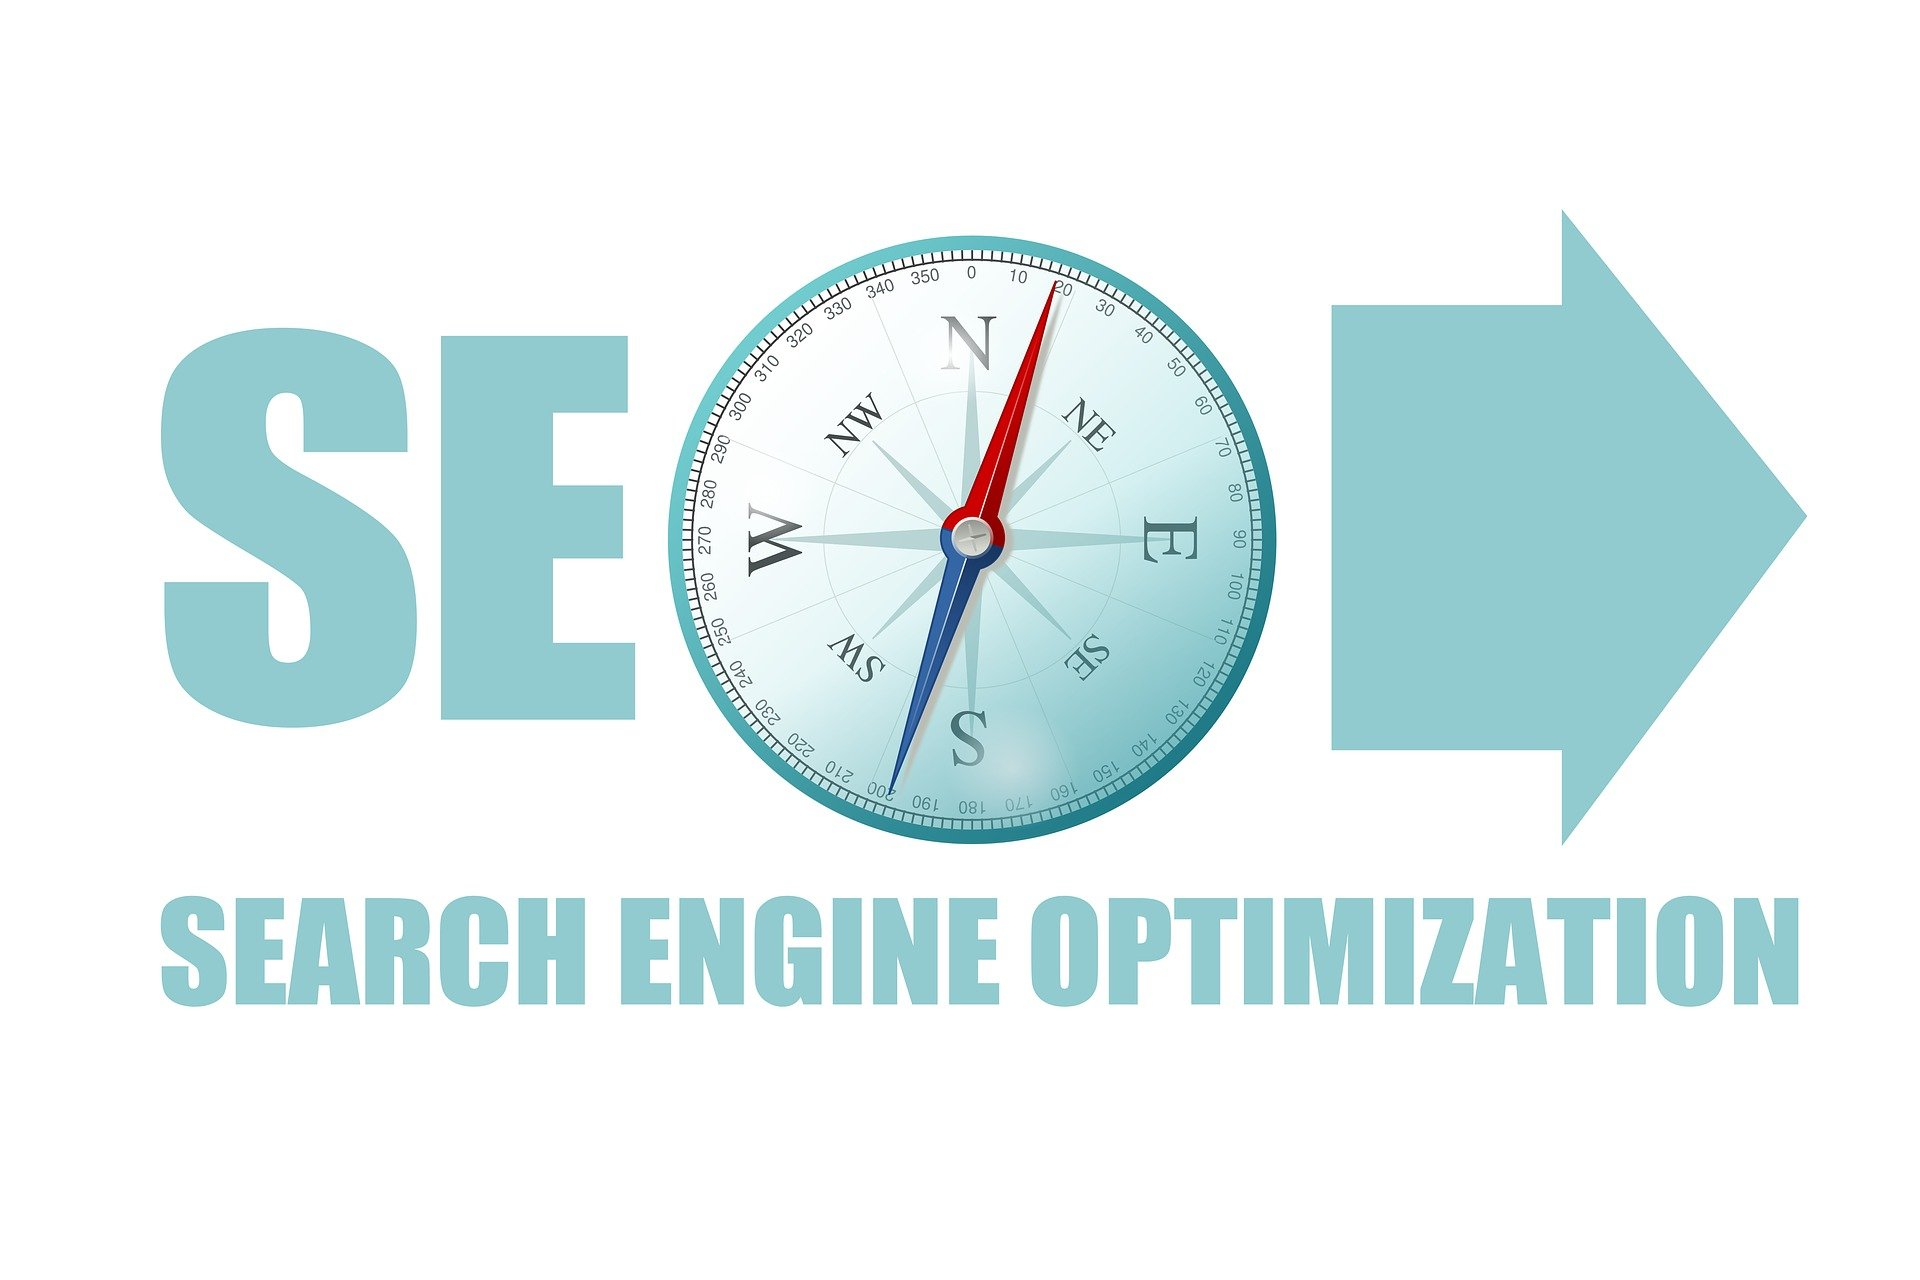 Search engine optimization marousi